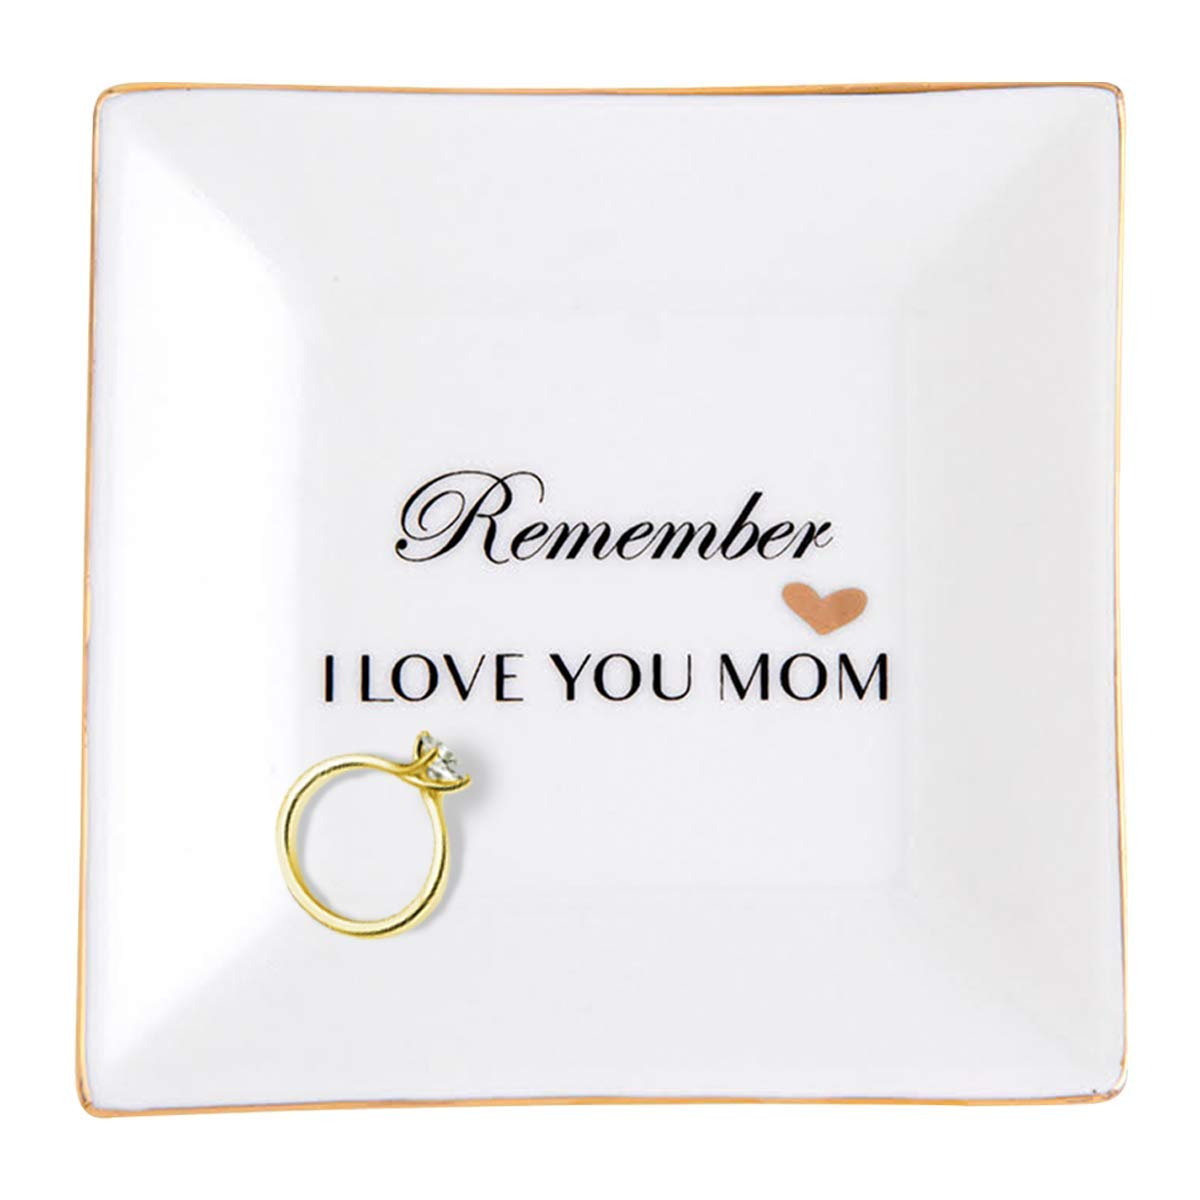 FORTIVO Birthday Gifts for Mom, for Mom from Daughter, Mom Trinket Dish, Mother in Law Gifts from Daughter in Law, Ceramic Dish with God Foil, Grandma or Grandmother Gifts, Presents for Mom by FORTIVO